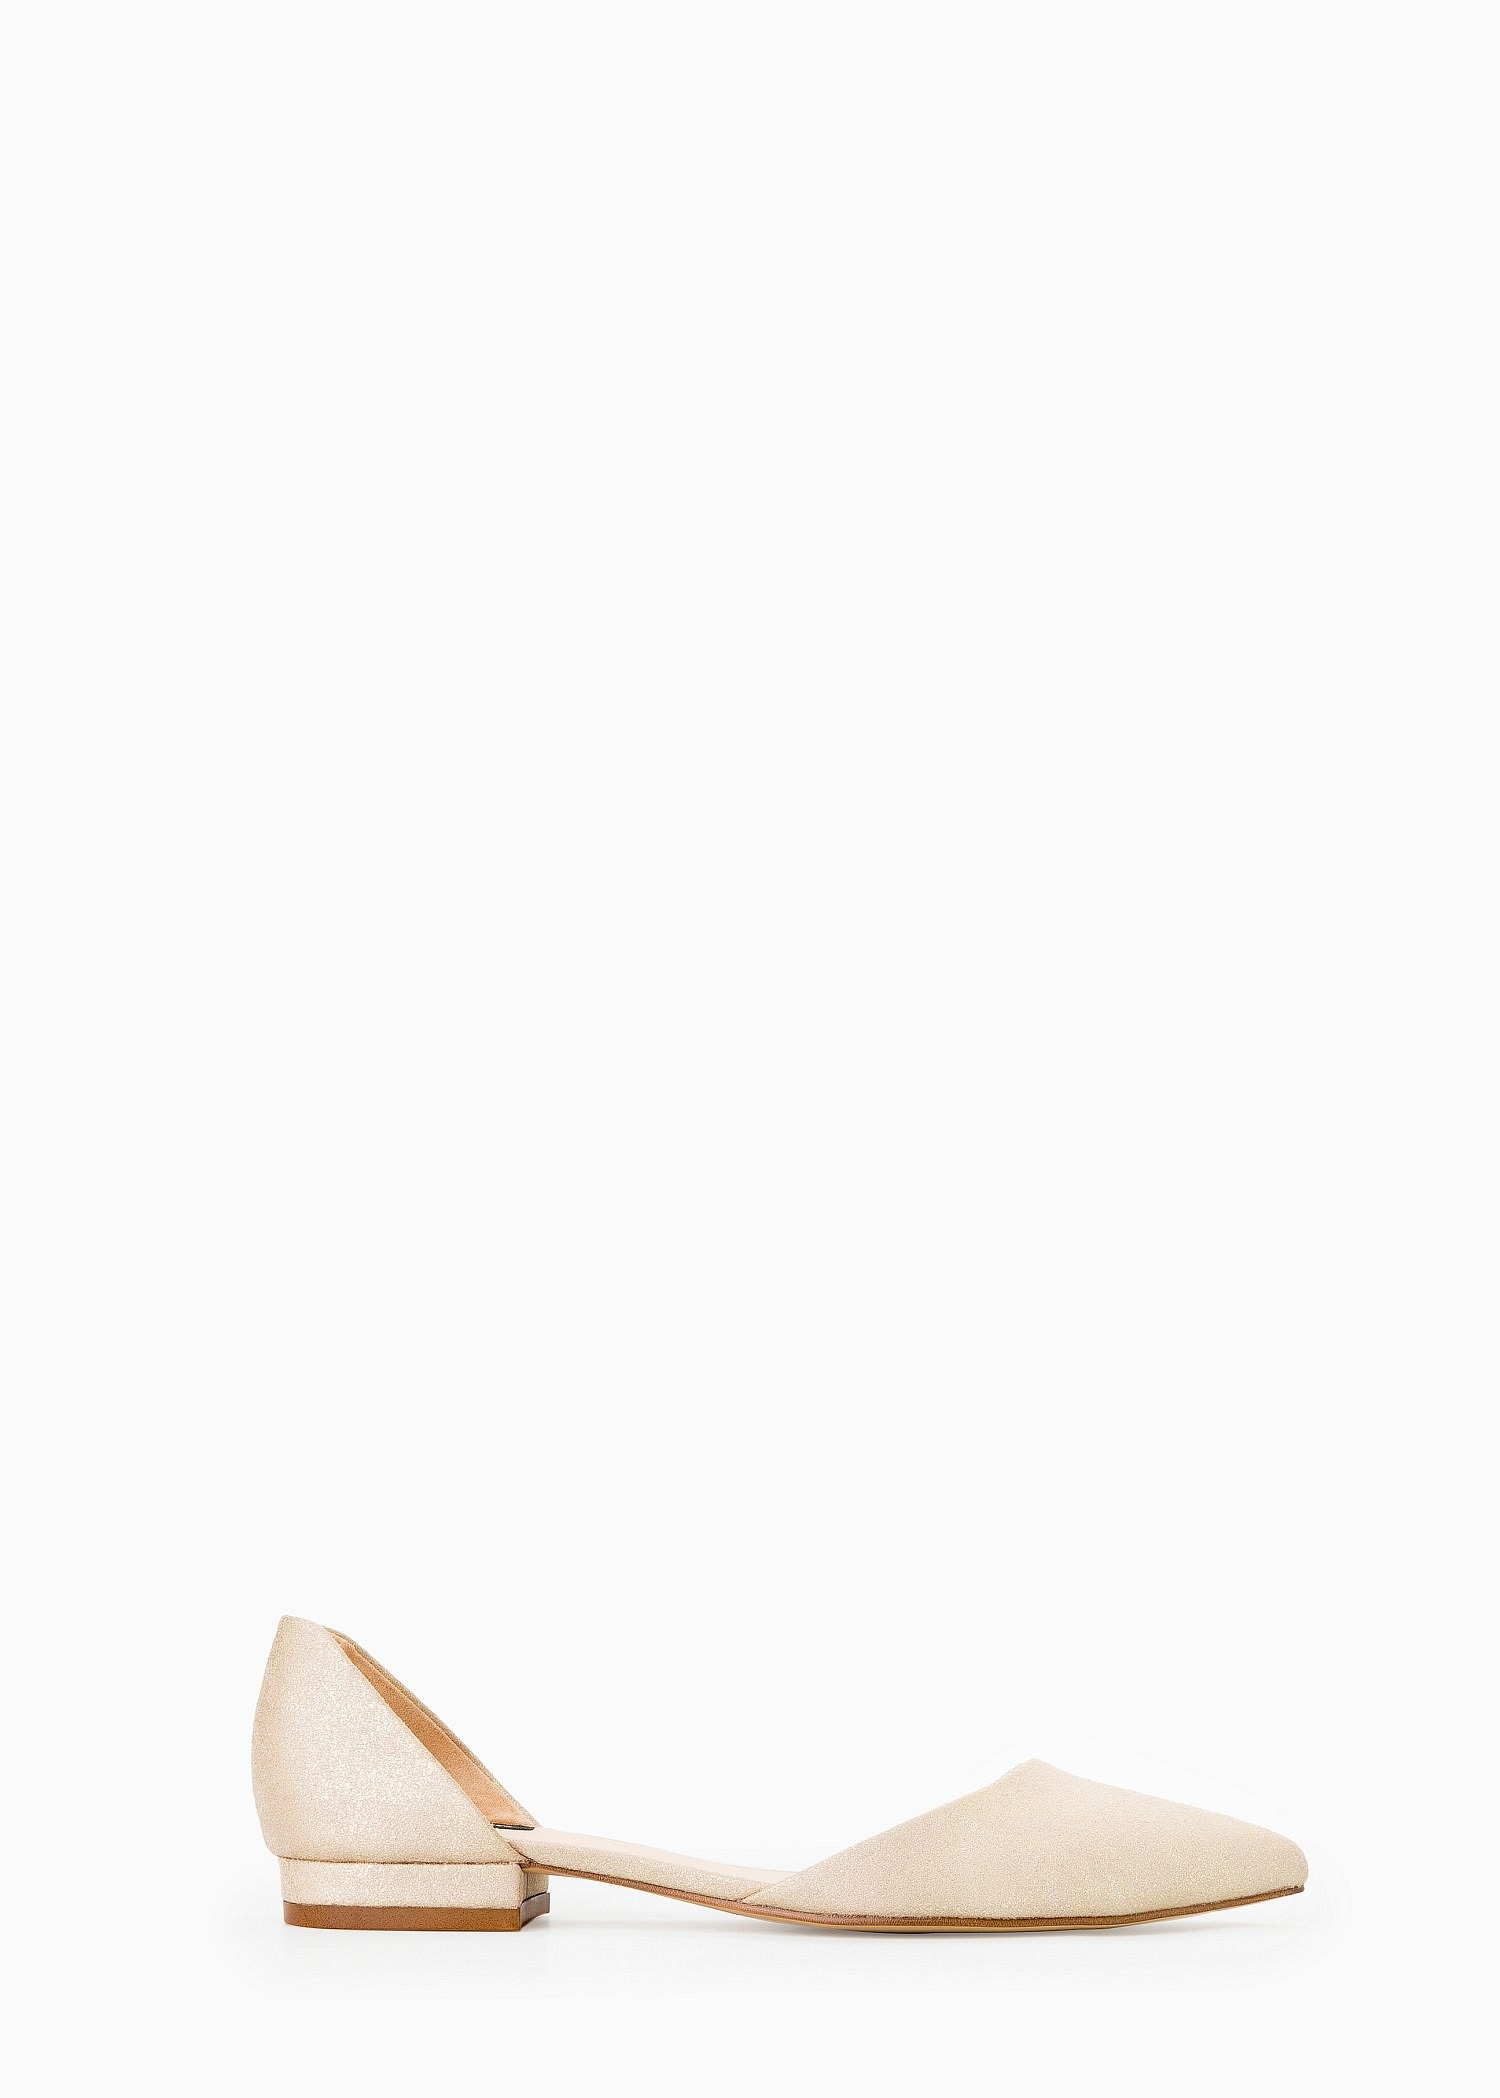 Lyst - Mango Pointed Toe Flat Shoes In Metallic